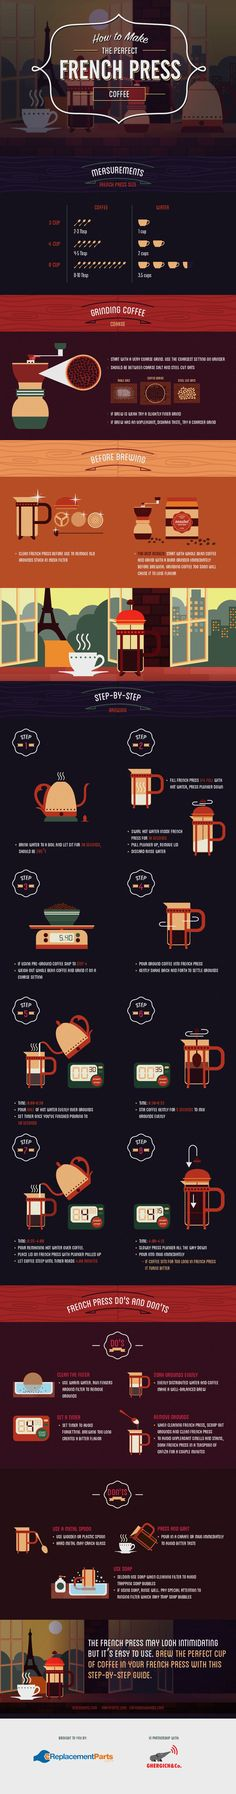 Making the Perfect French Press Coffee